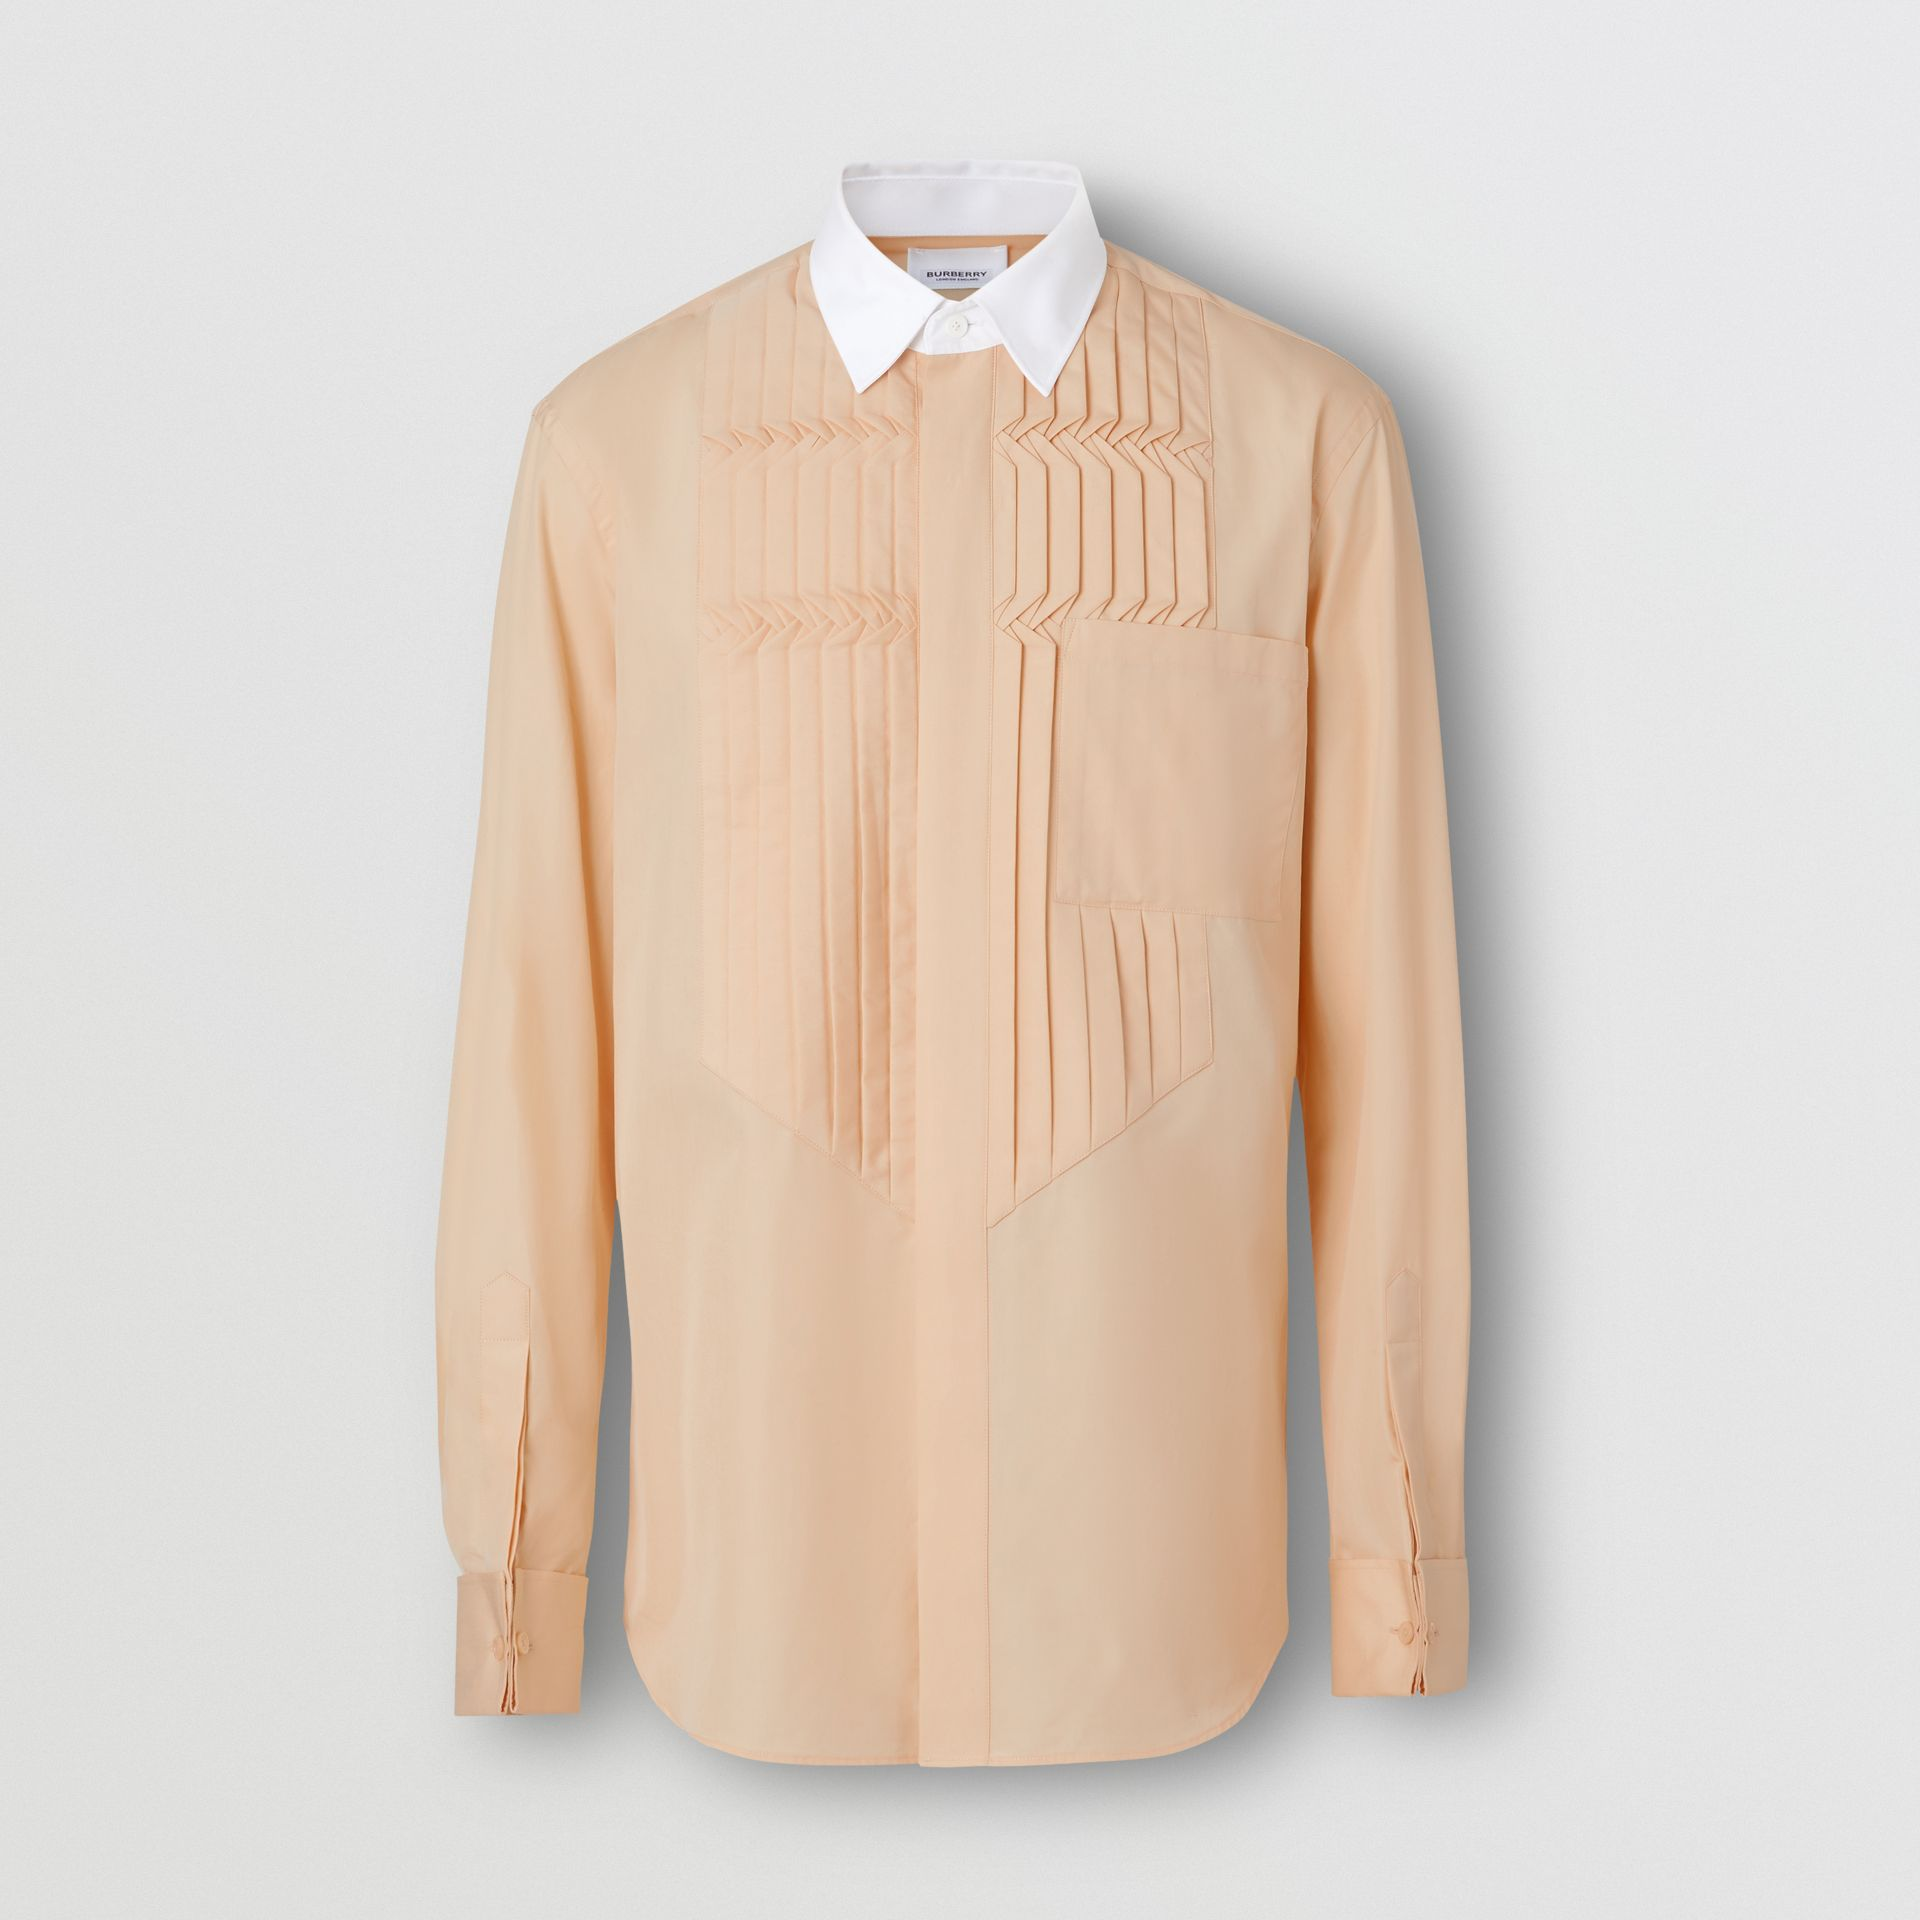 Classic Fit Pleated Bib Cotton Poplin Dress Shirt in Buttermilk - Men | Burberry Singapore - gallery image 3